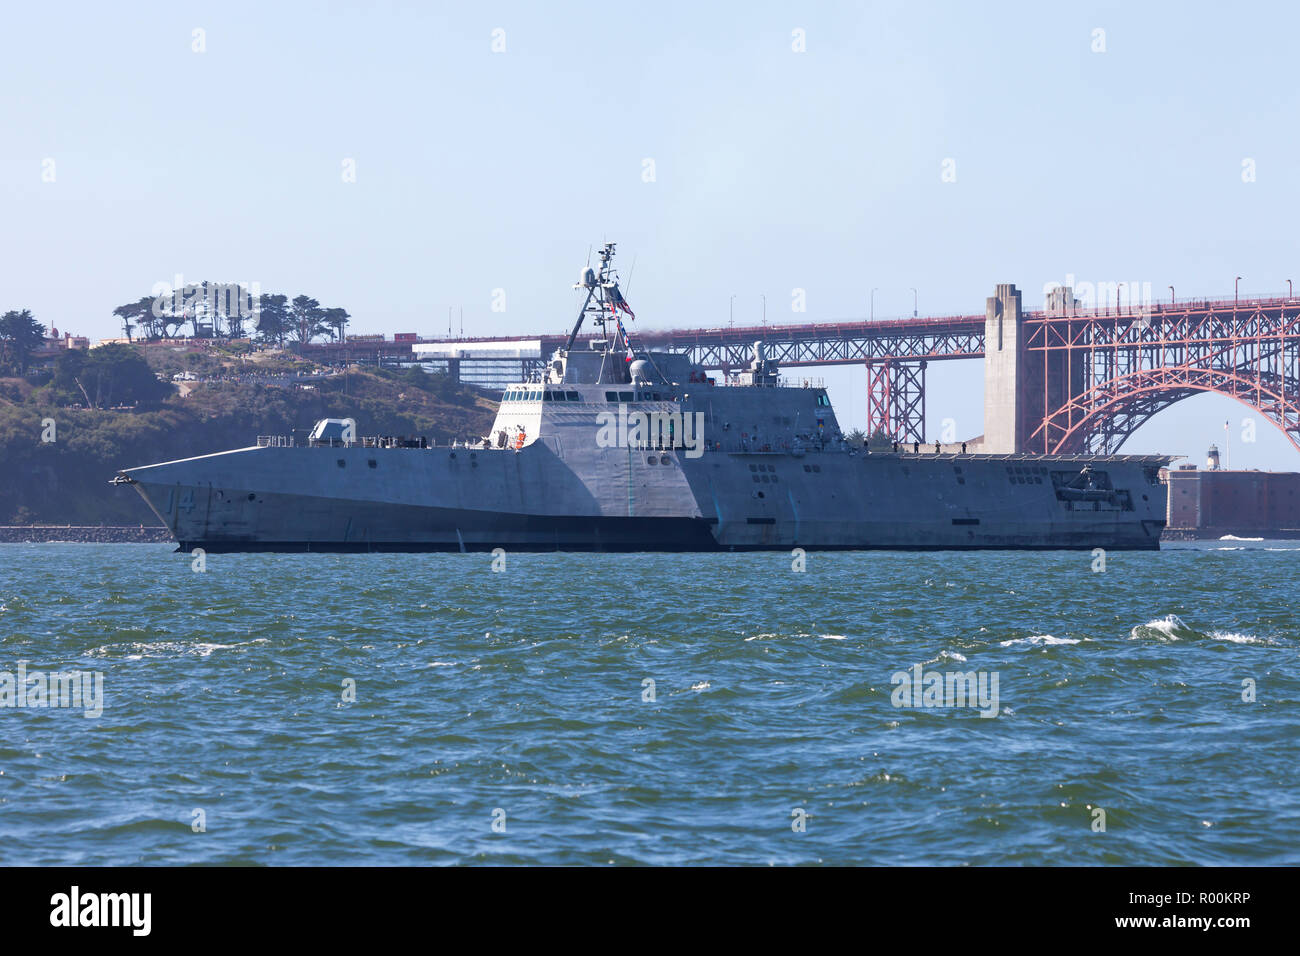 The Independence class littoral combat ship USS Manchester (LCS 14) on San Francisco Bay. Stock Photo